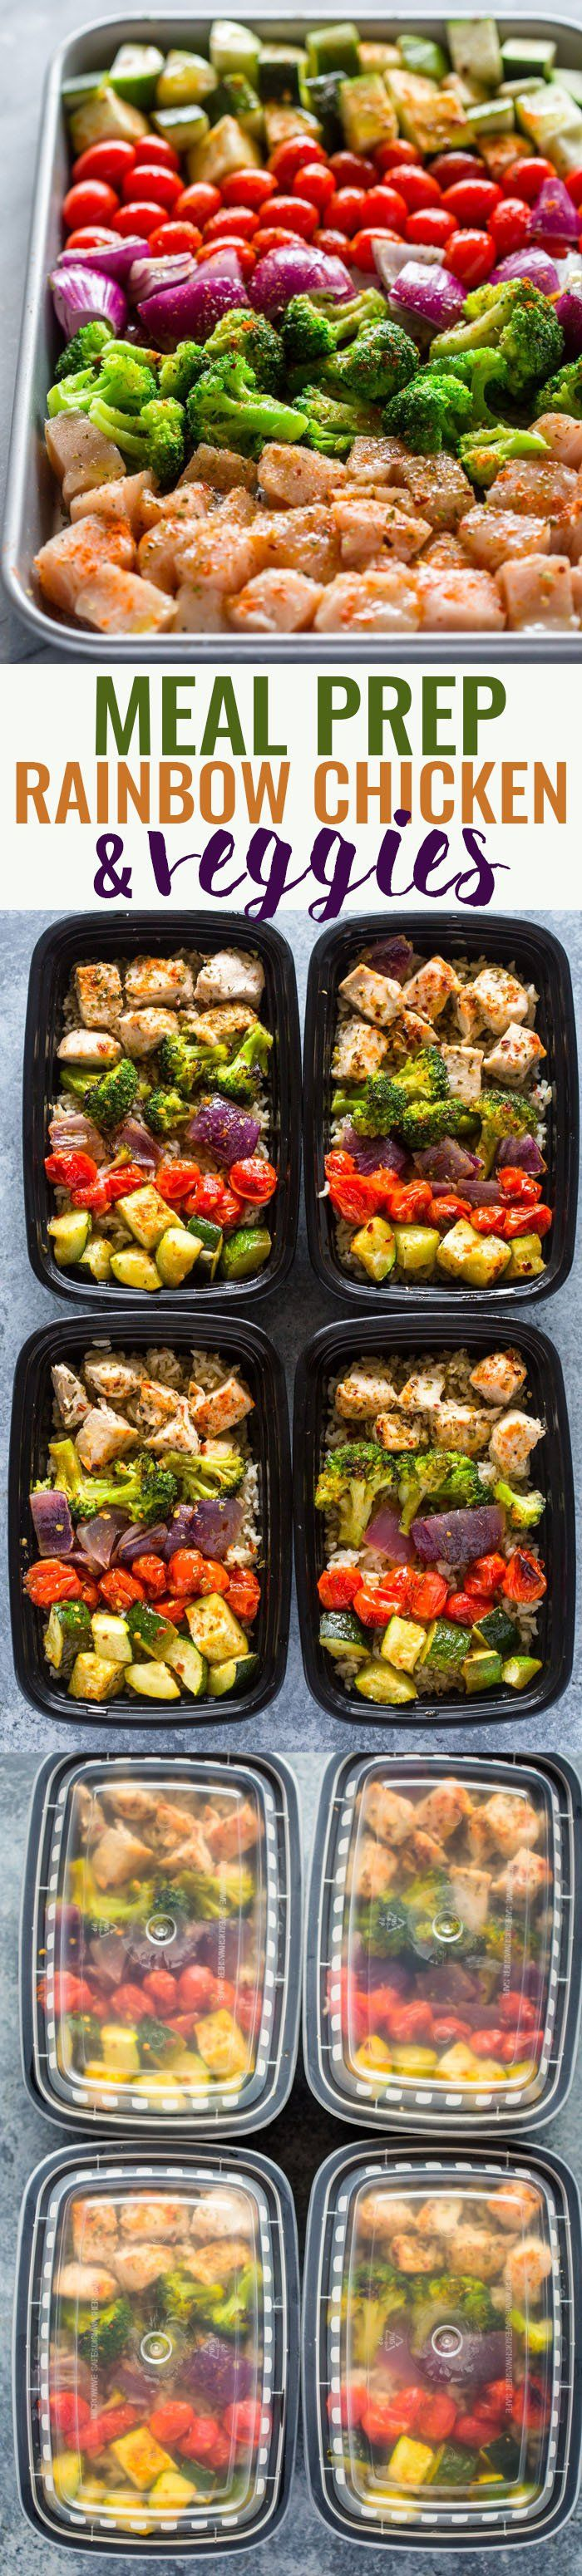 584 best advocare 24 day challenge meal ideas images on pinterest meal prep healthy chicken and veggies forumfinder Image collections